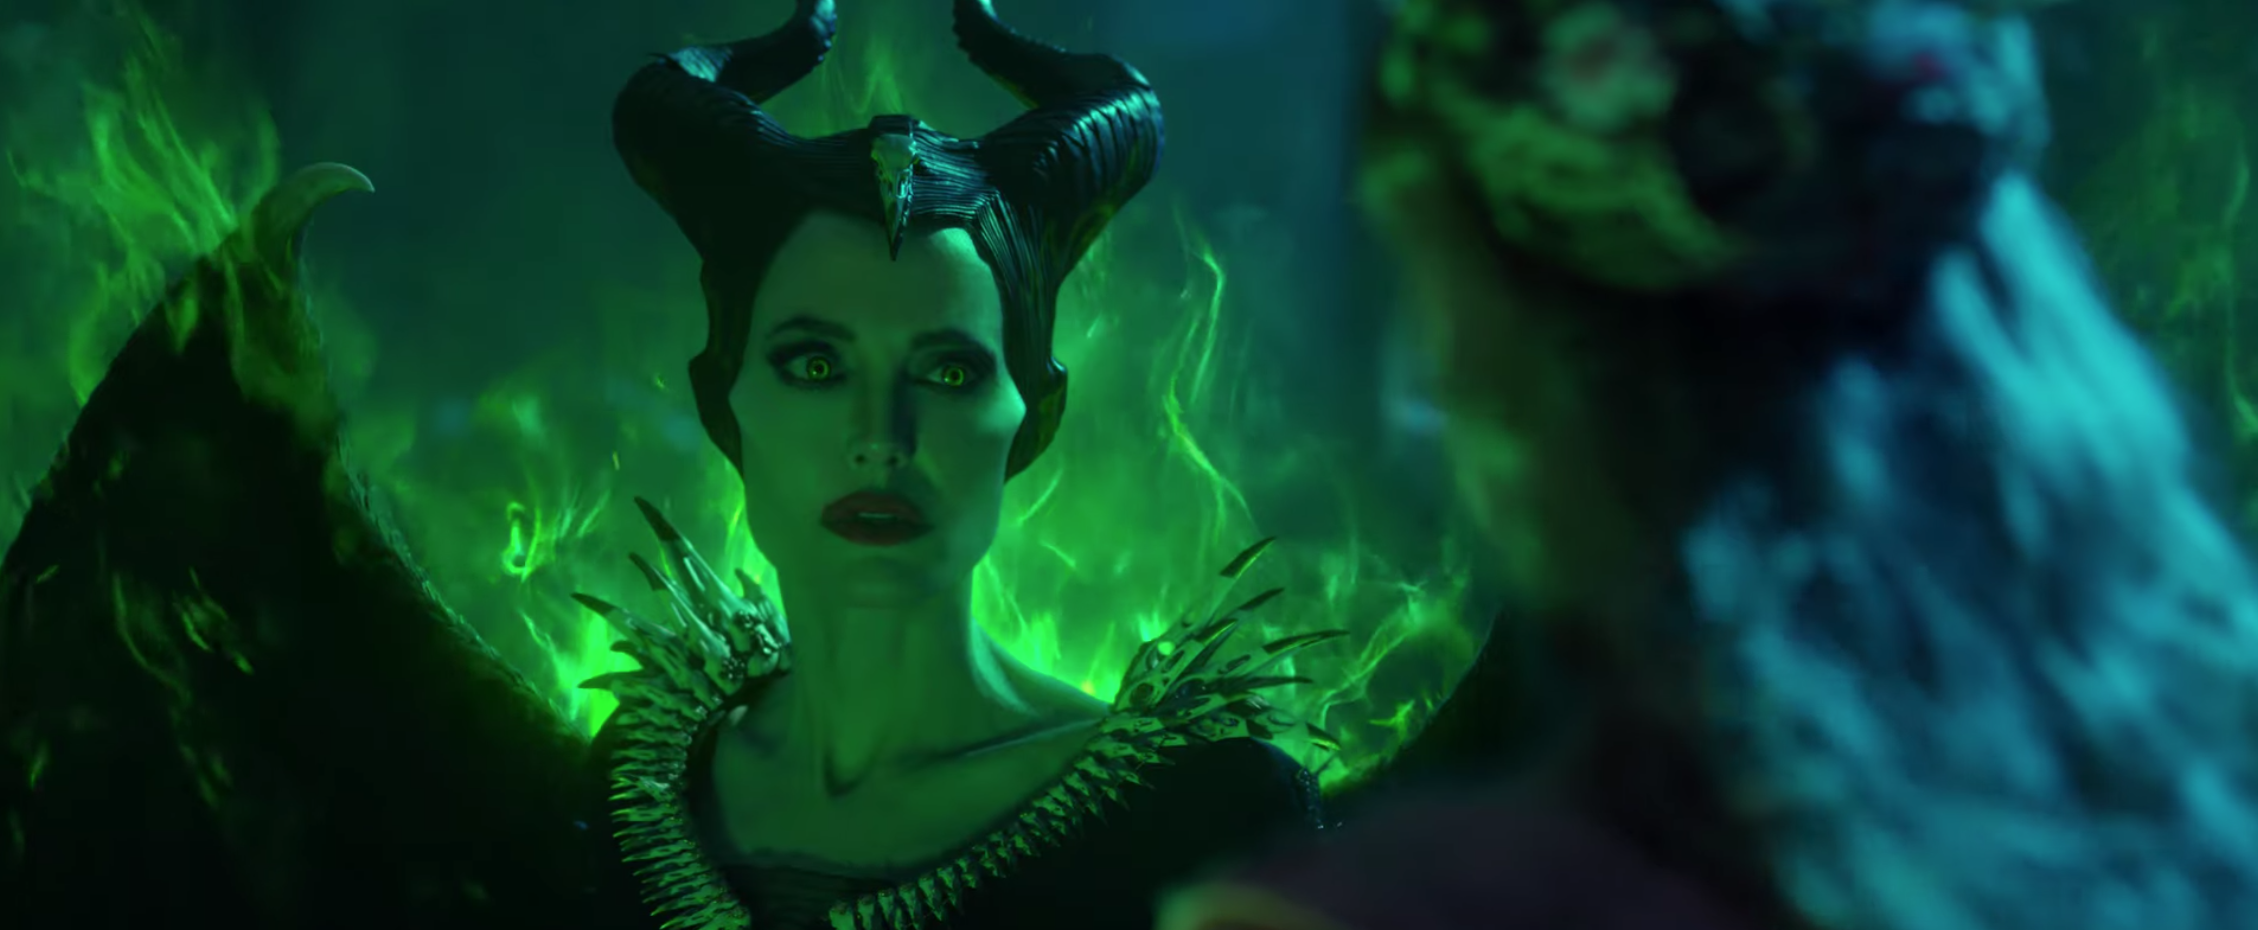 Disney Libera Primer Trailer De Maleficent Mistress Of Evil